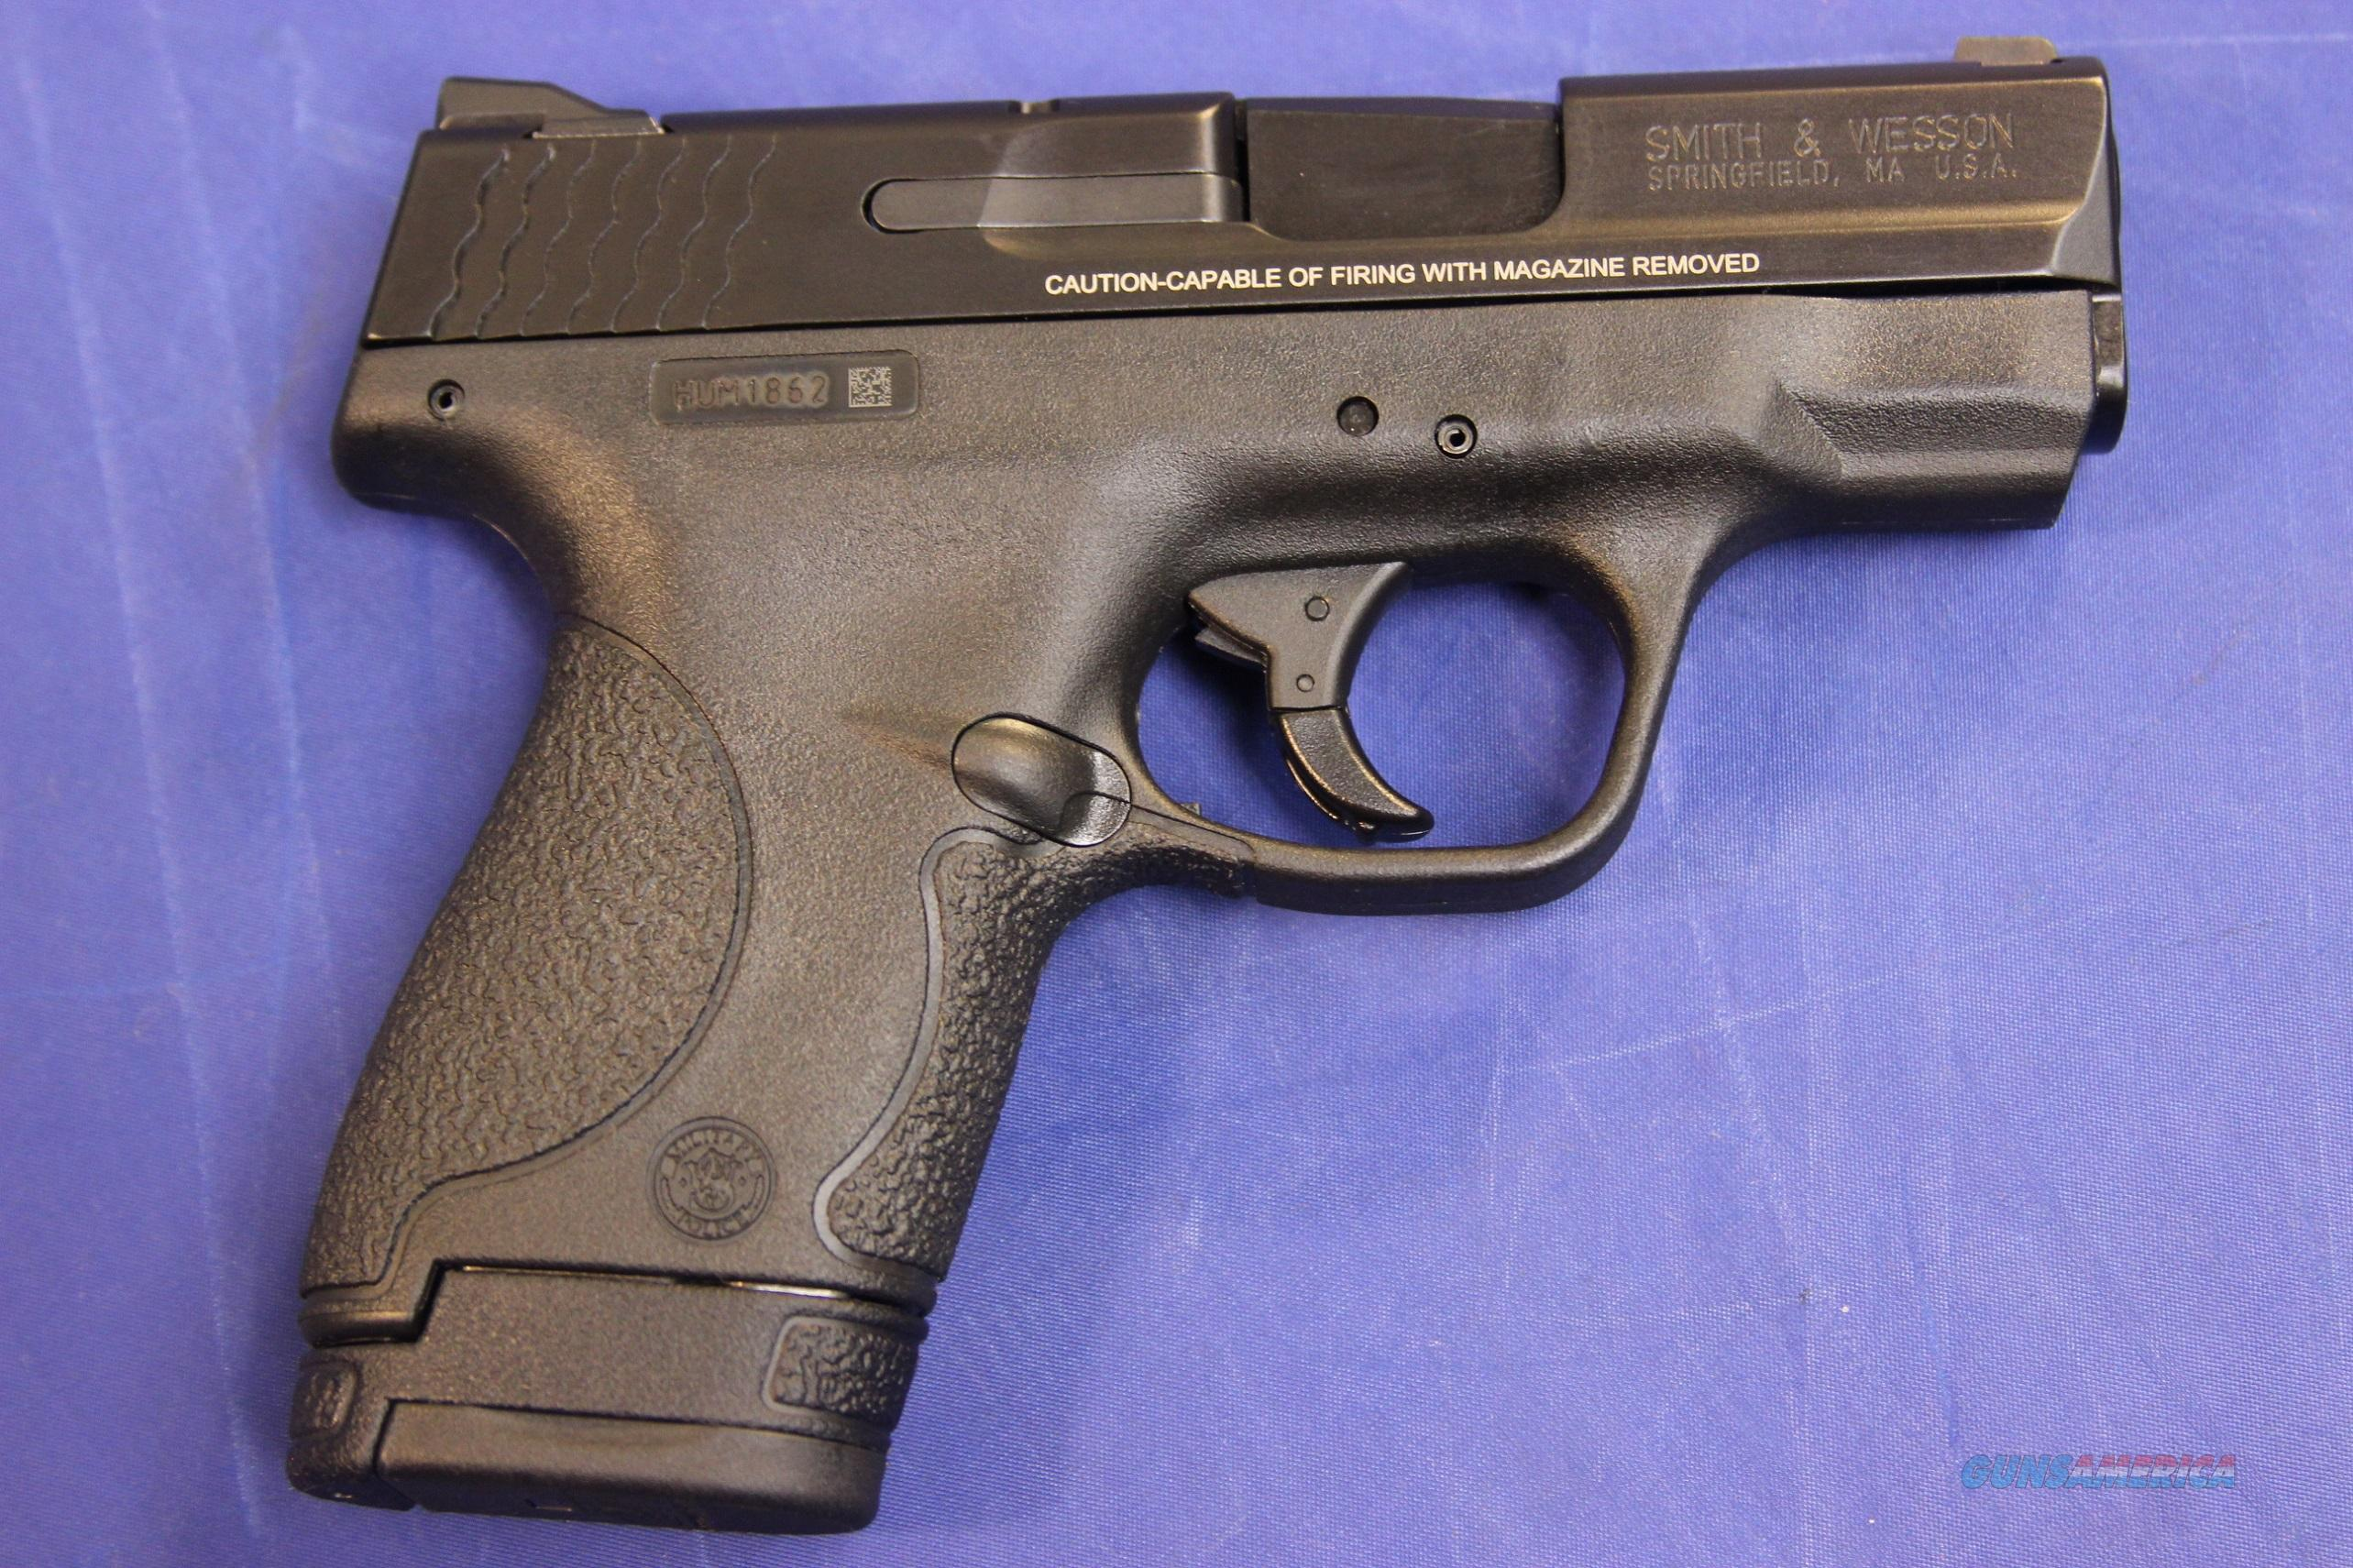 SMITH & WESSON MP SHIELD .40 SMITH AND WESSON - NEW!  Guns > Pistols > Smith & Wesson Pistols - Autos > Shield